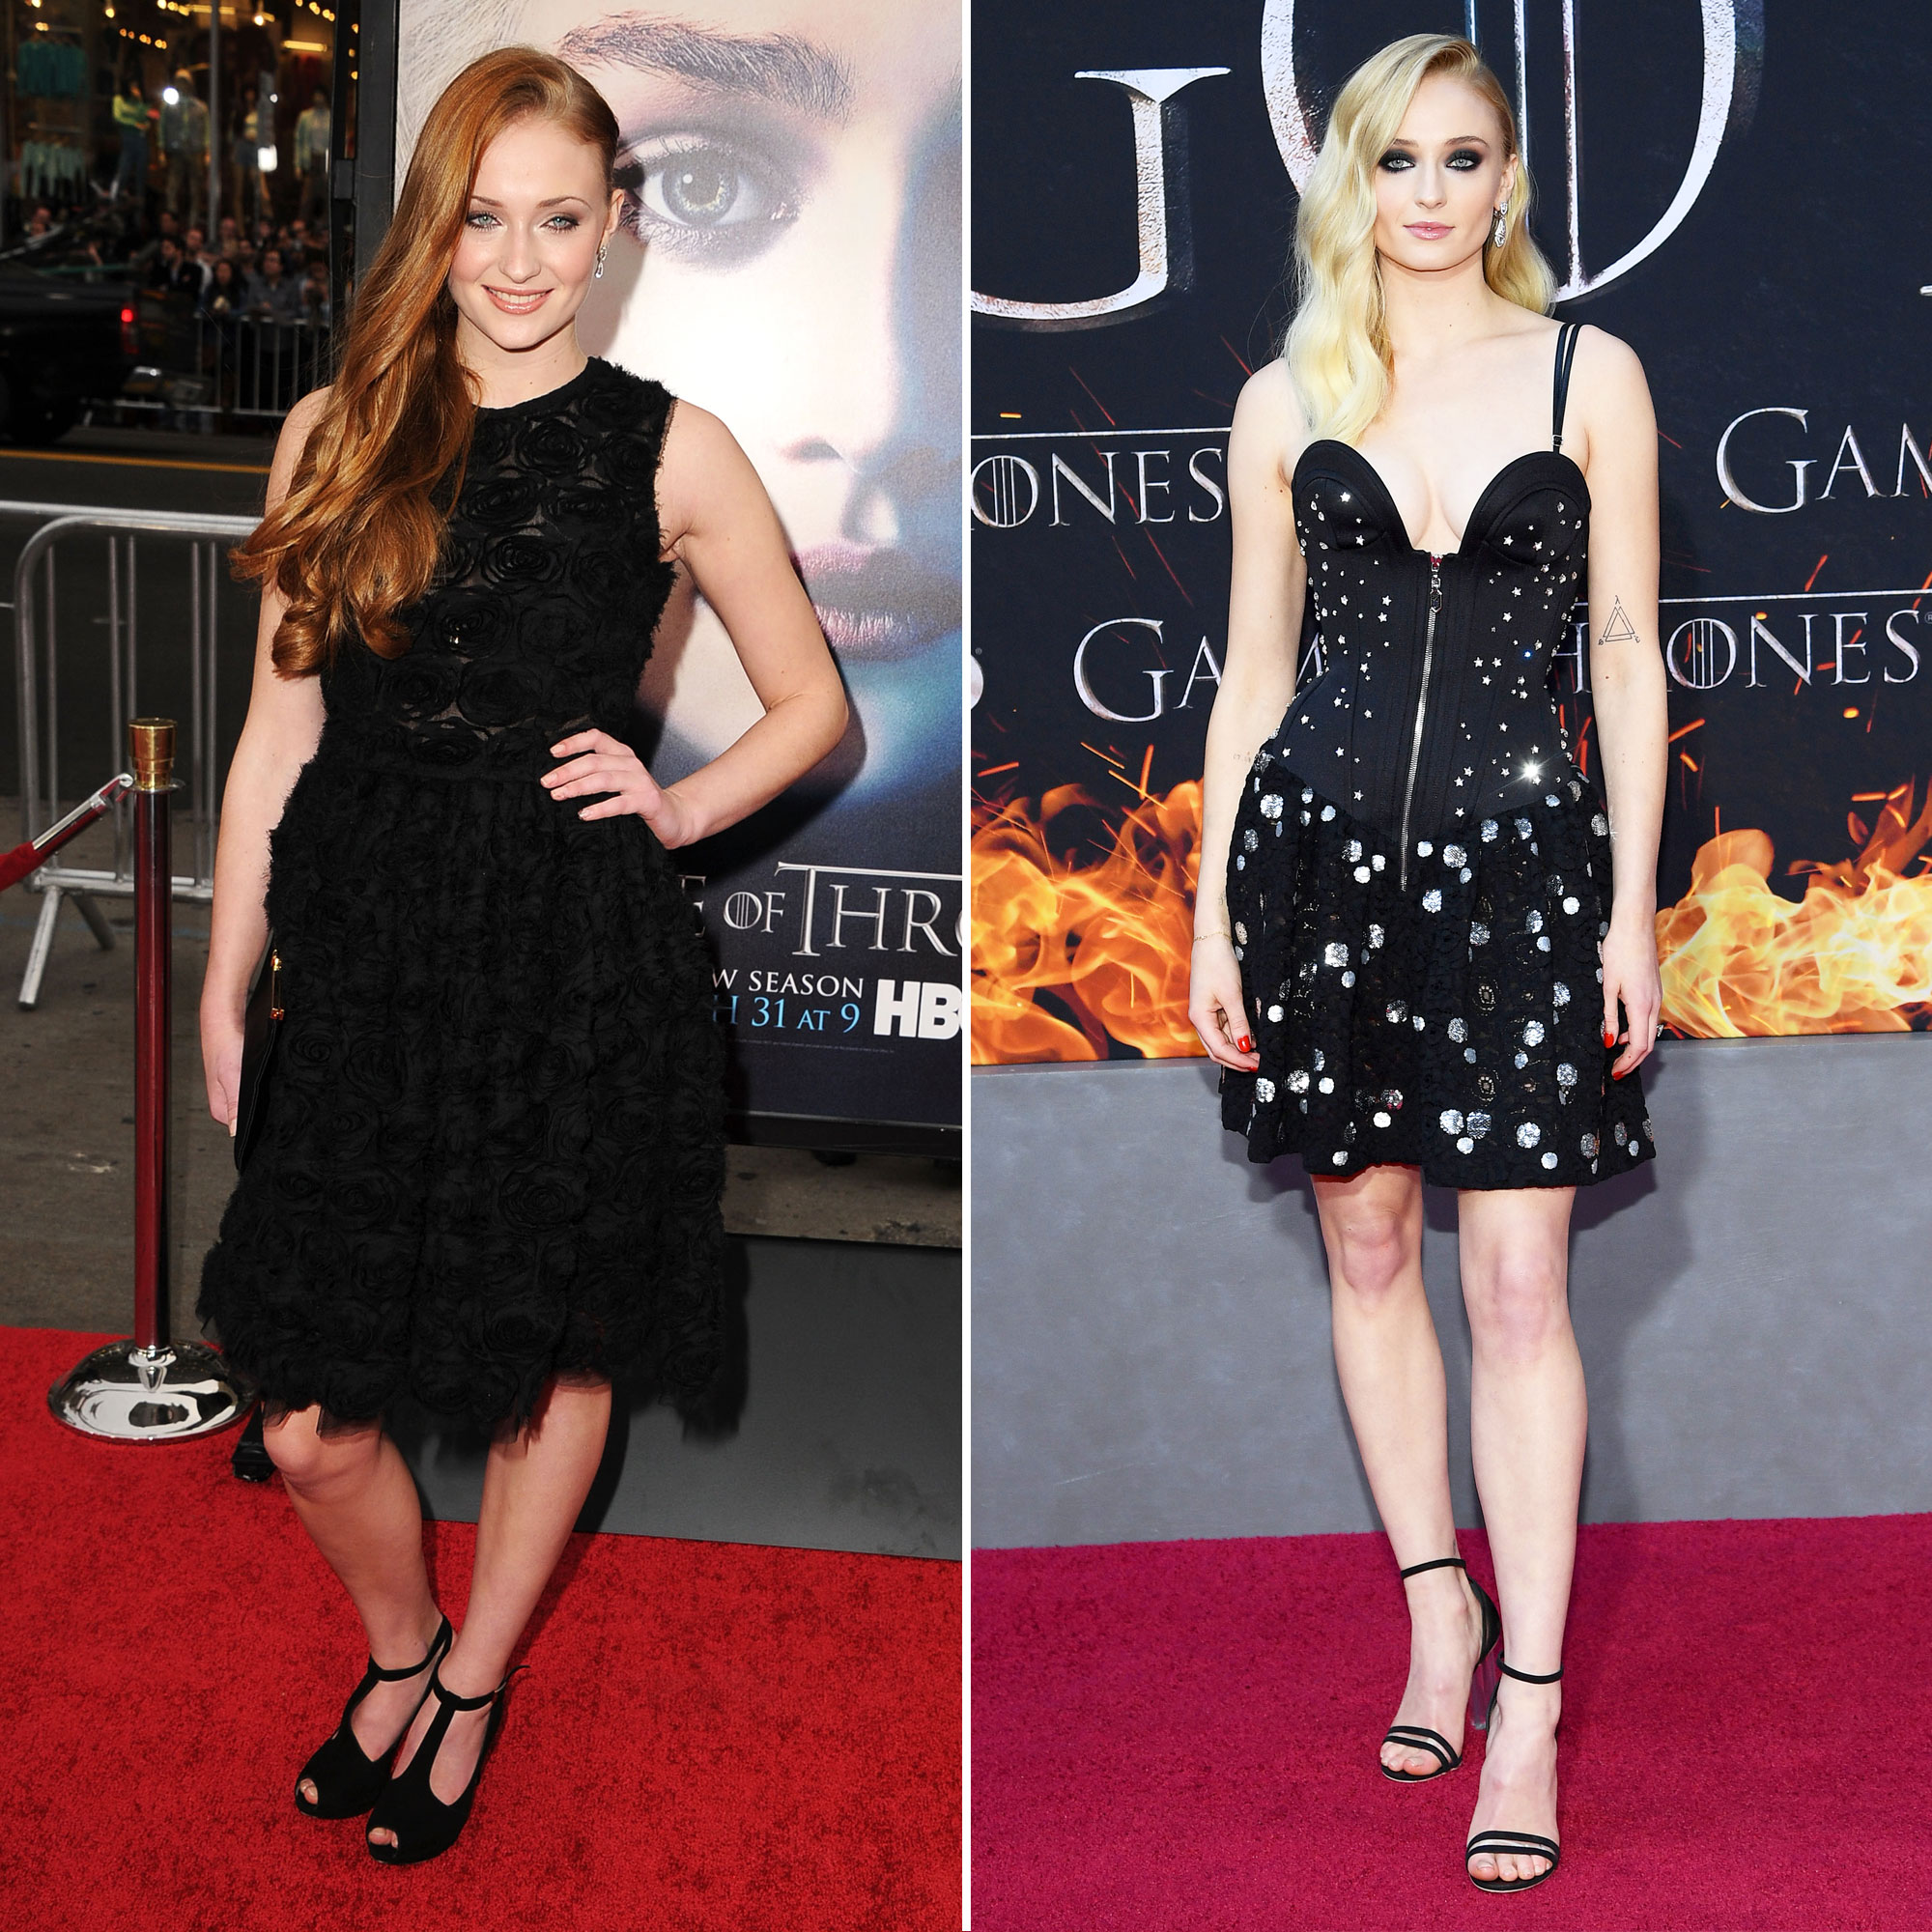 Sophie Turner 'Game of Thrones' Stars: From the First 'GoT' Red Carpet Premiere to the Last - The then-redheaded Sophie Turner was 15 years old the day Game of Thrones first aired, which means she was still a teen when she walked the carpet at the season 3 premiere. At the latest event, though, the stunning starlet, who's now in her twenties, is a blonde beauty with an impressive slate of movies in the works, including the latest X-Men flick, Dark Phoenix .